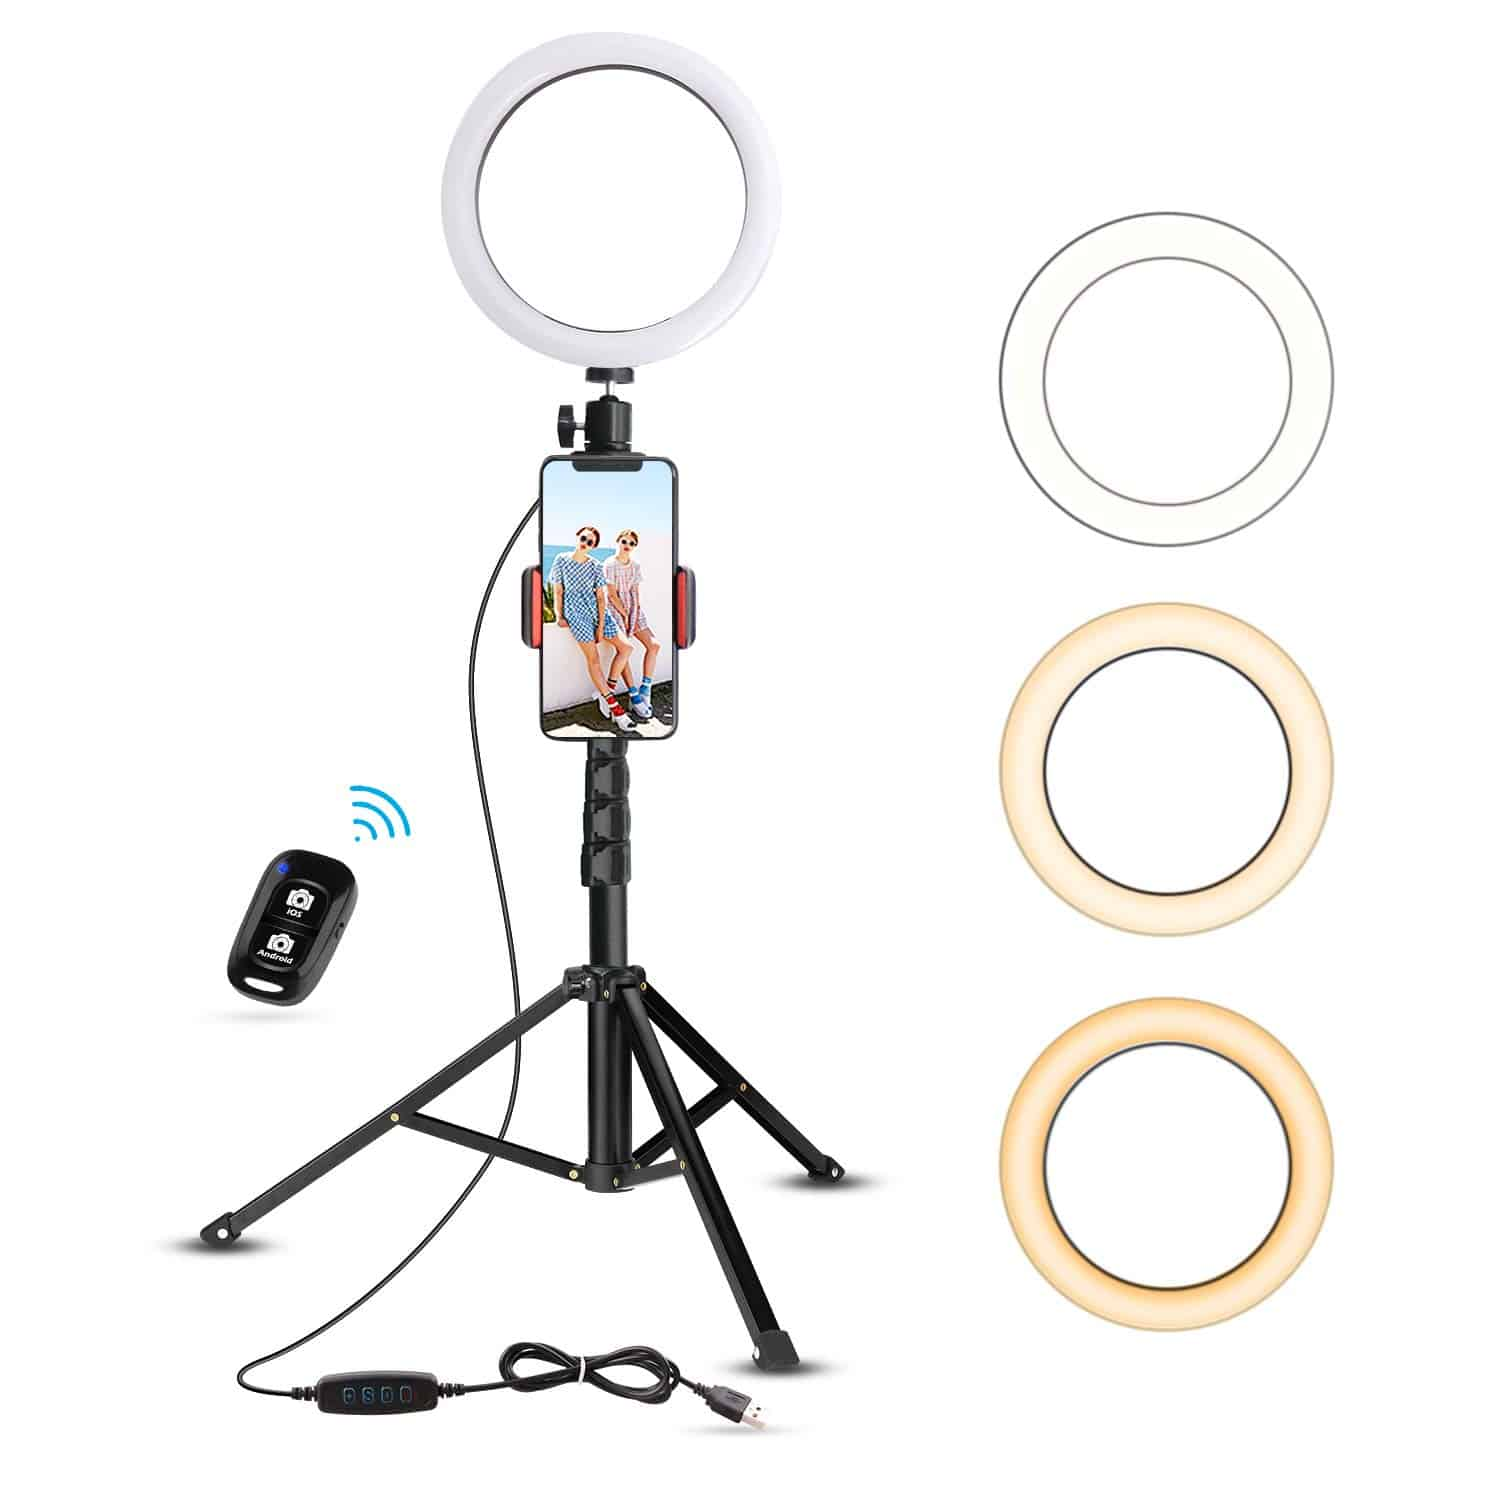 Ubeesize 8-inch Ring Light with stand